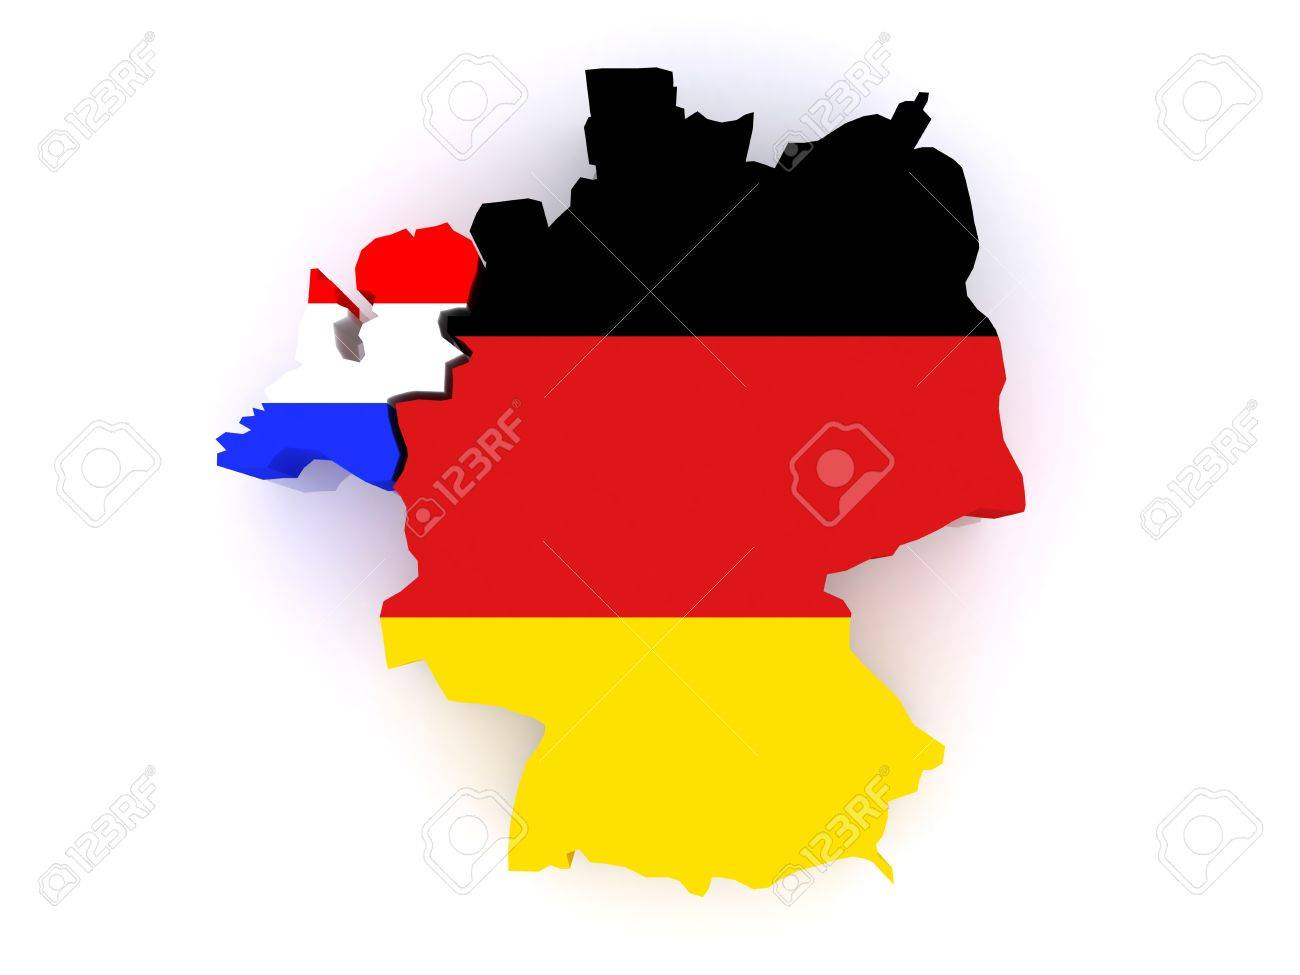 Map Of Germany And The Netherlands.Map Of Netherlands And Germany 3d